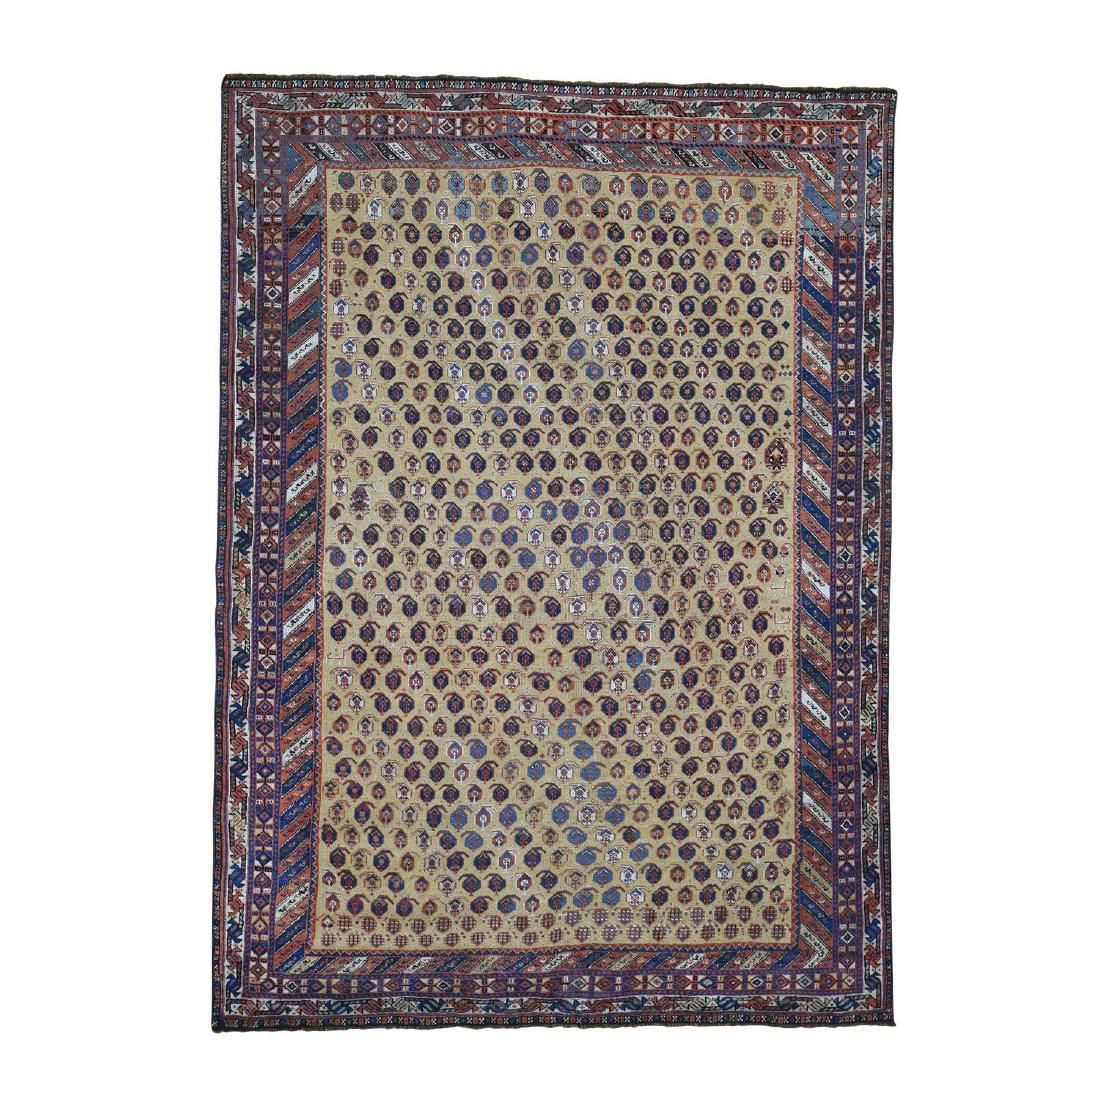 Antique Persian Afshar Even Wear Good Condition